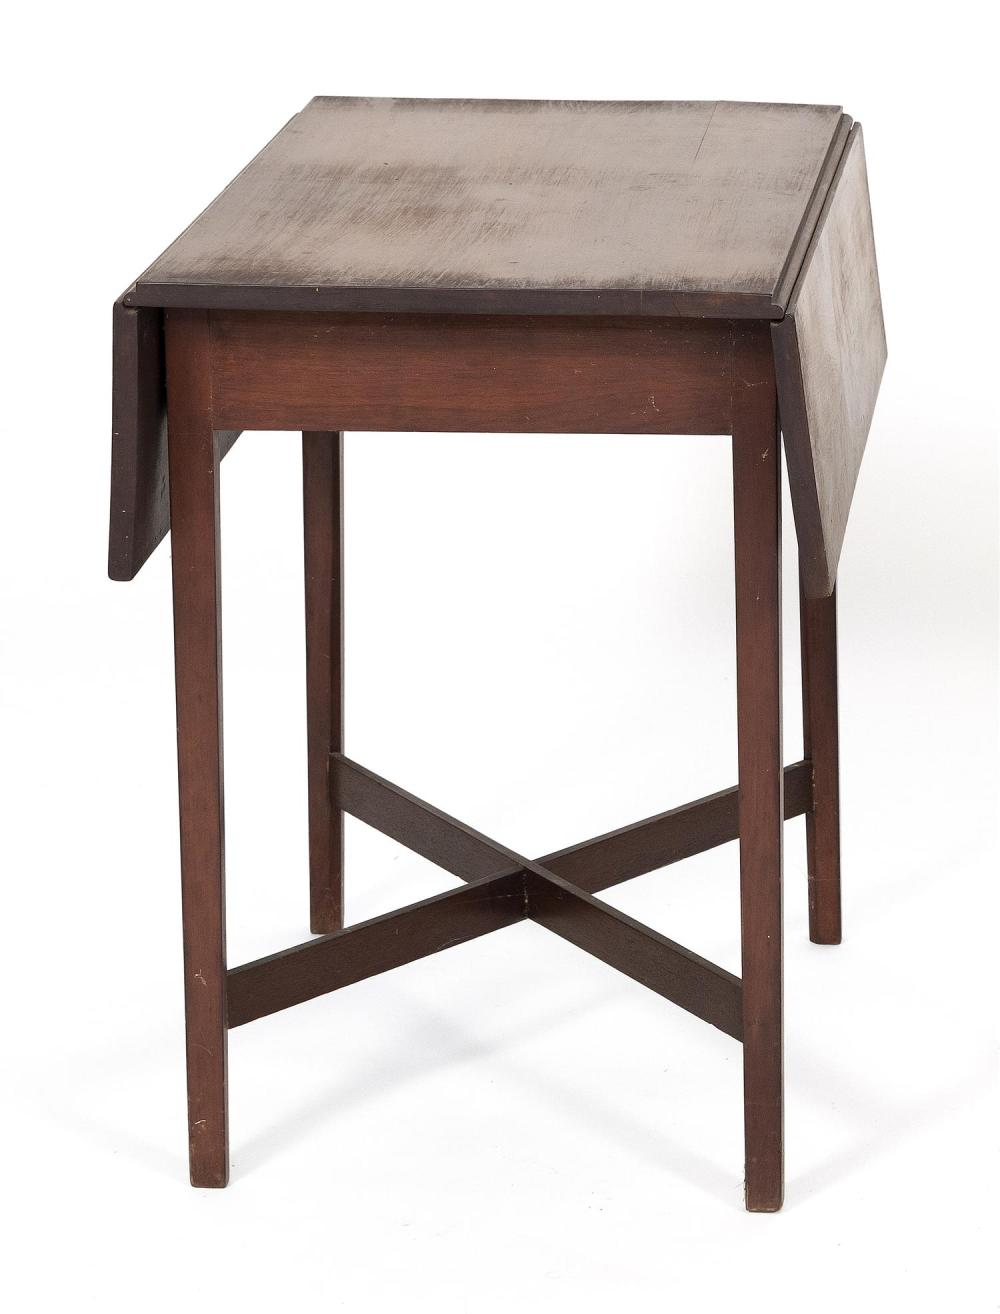 PEMBROKE TABLE In mahogany. Drawer with a circular brass pull. Square tapered legs joined with a cross-stretcher. Height 28.5